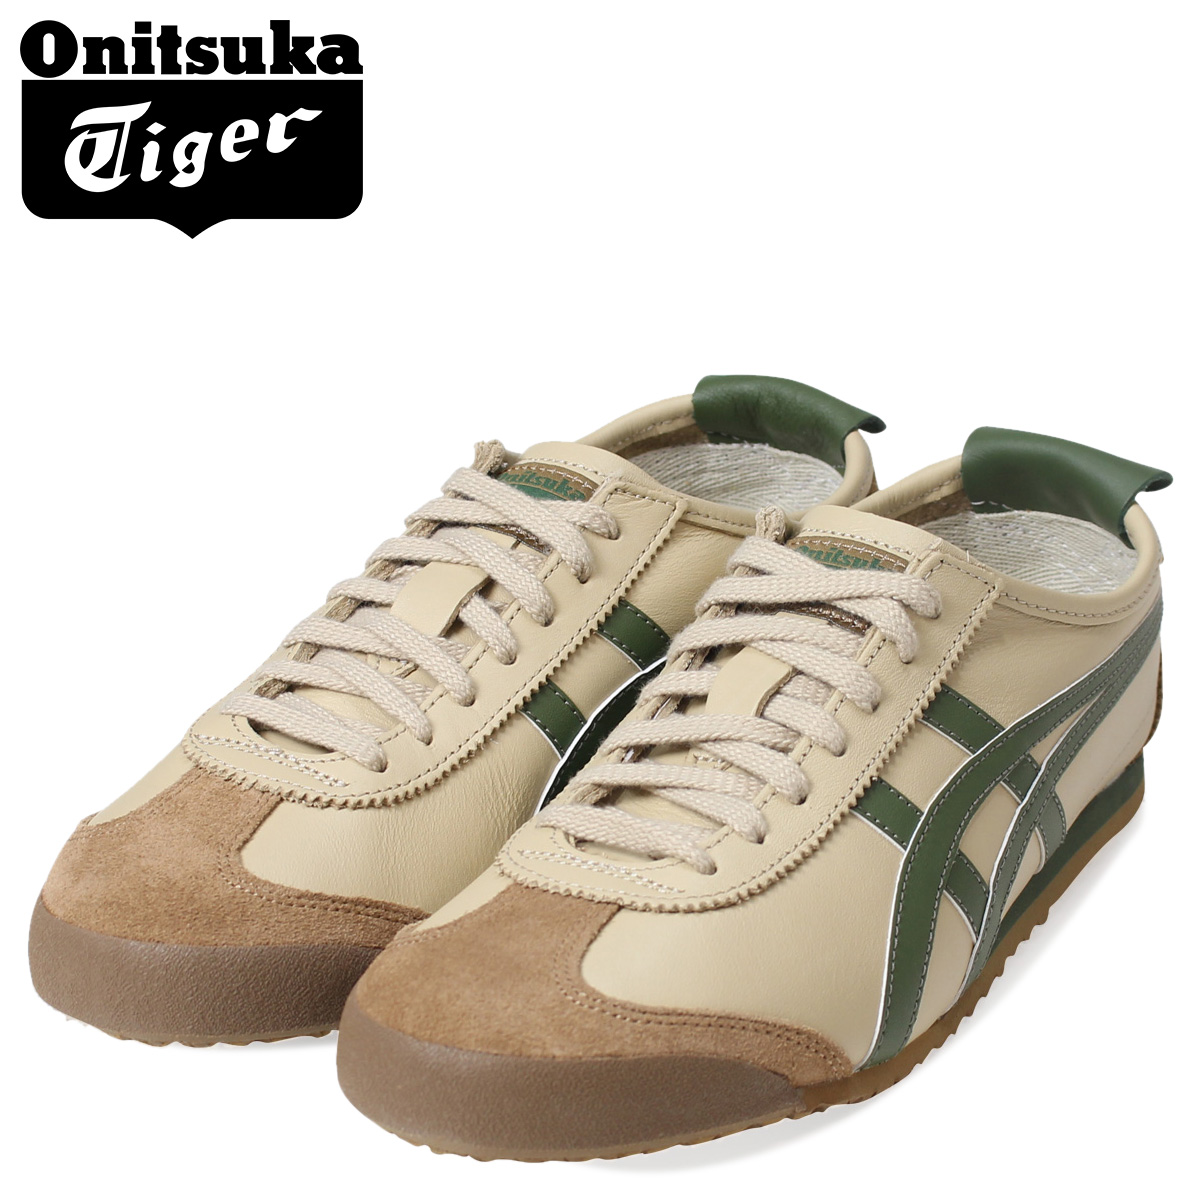 on sale b9e04 24076 ... sold out 997ef def6c  cheap onitsuka tiger asics onitsuka tiger asics  mexico 66 sneaker thl202 1785 mexico 66 mens womens